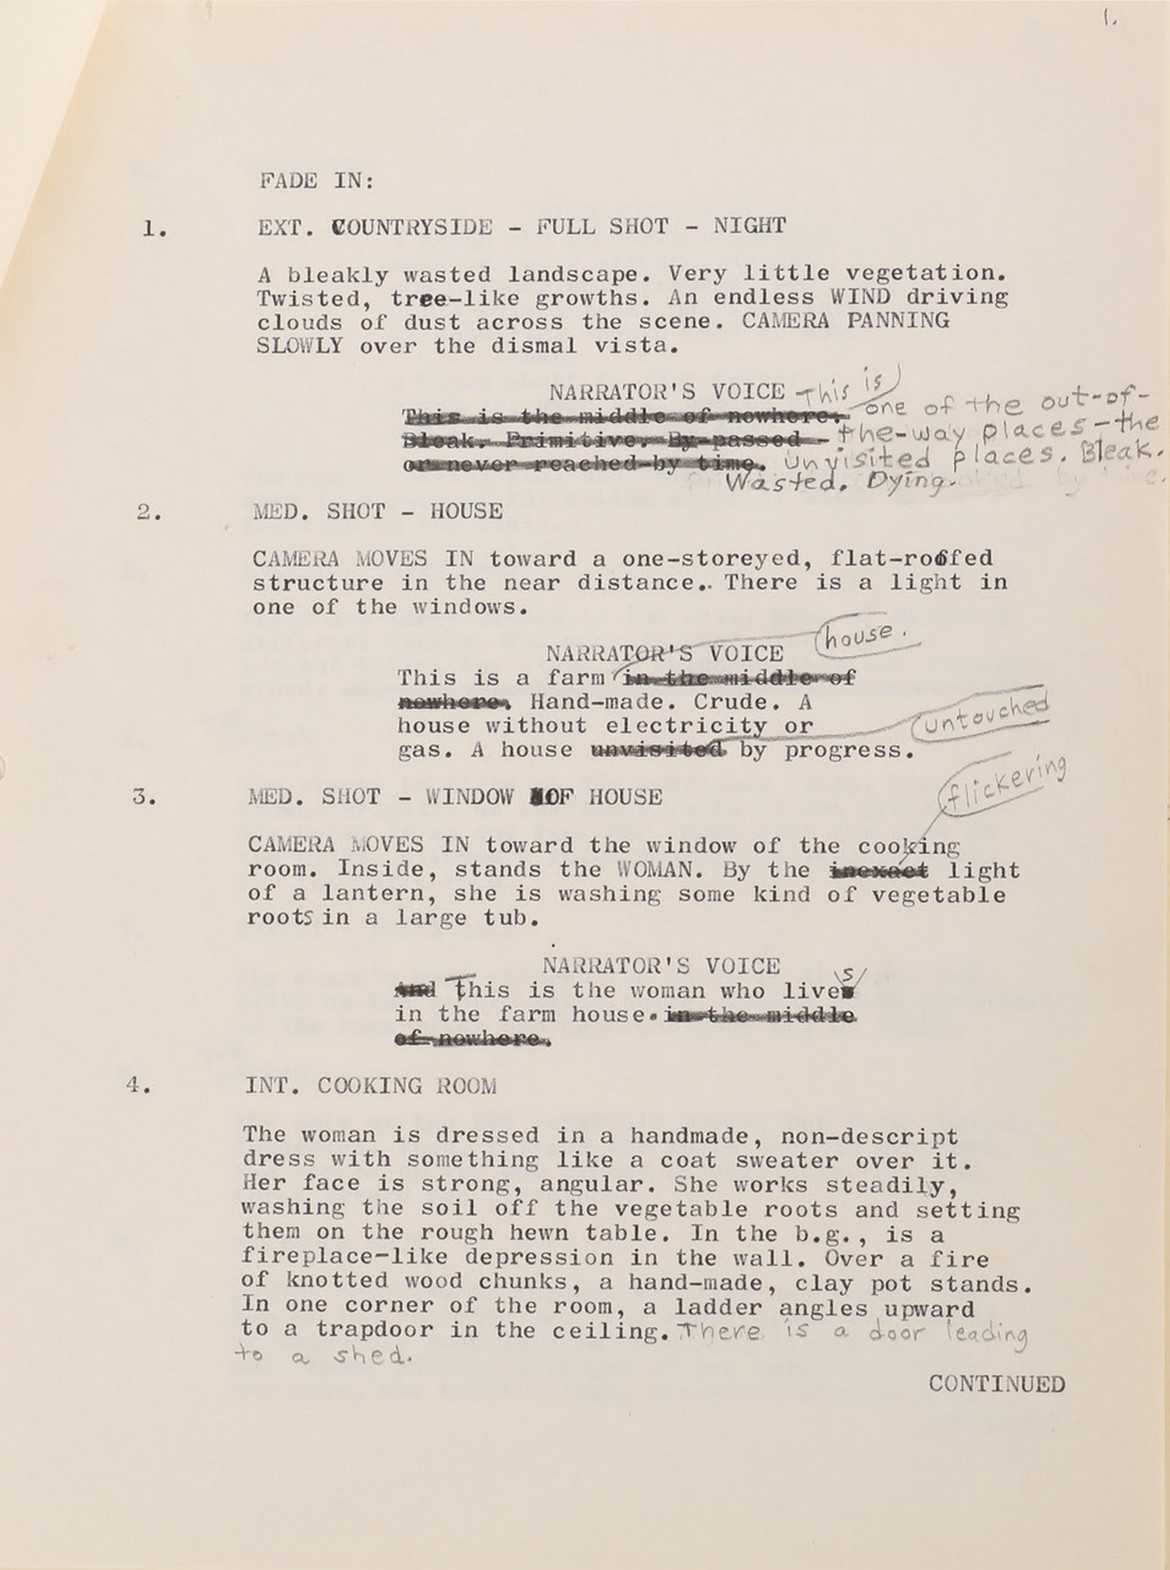 Classic Twilight Zone scripts from Richard Matheson hitting auction ...